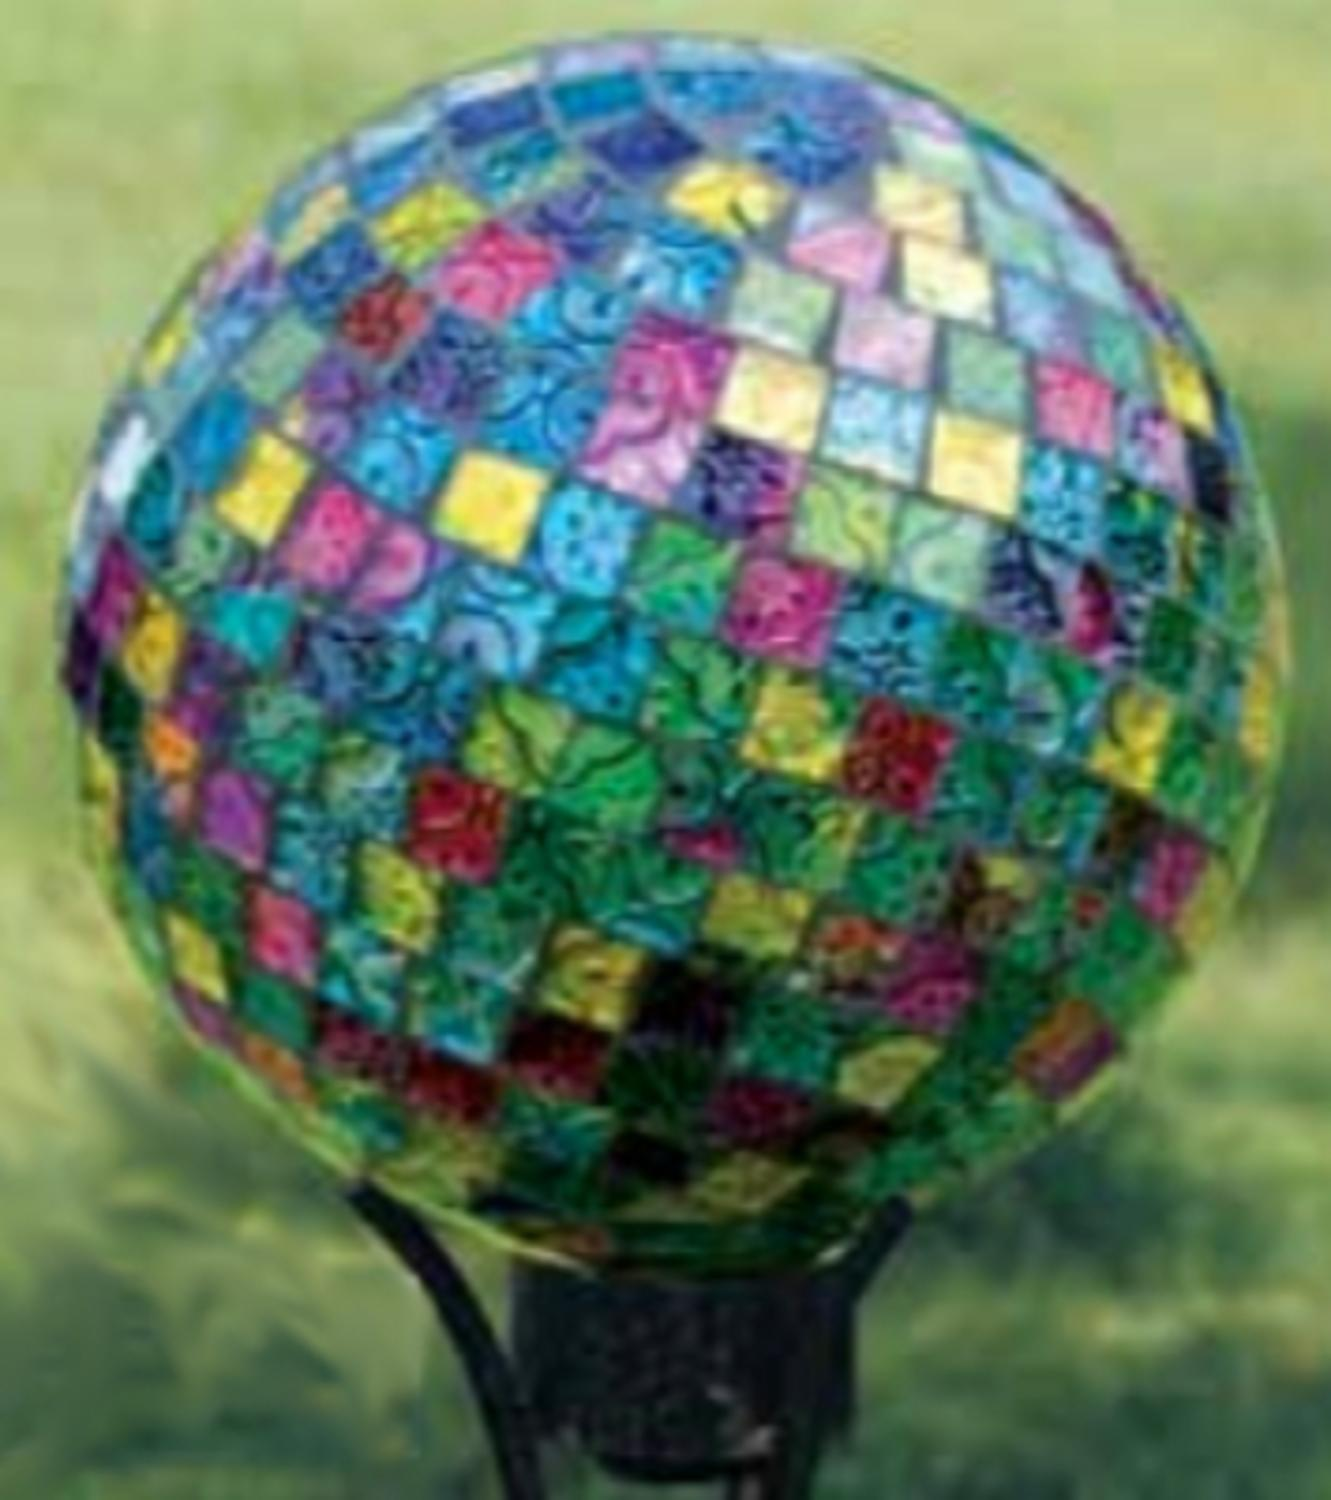 "10"" Vibrant Jewel Tone Art Glass Mosaic Outdoor Patio Garden Gazing Ball by CC Outdoor Living"